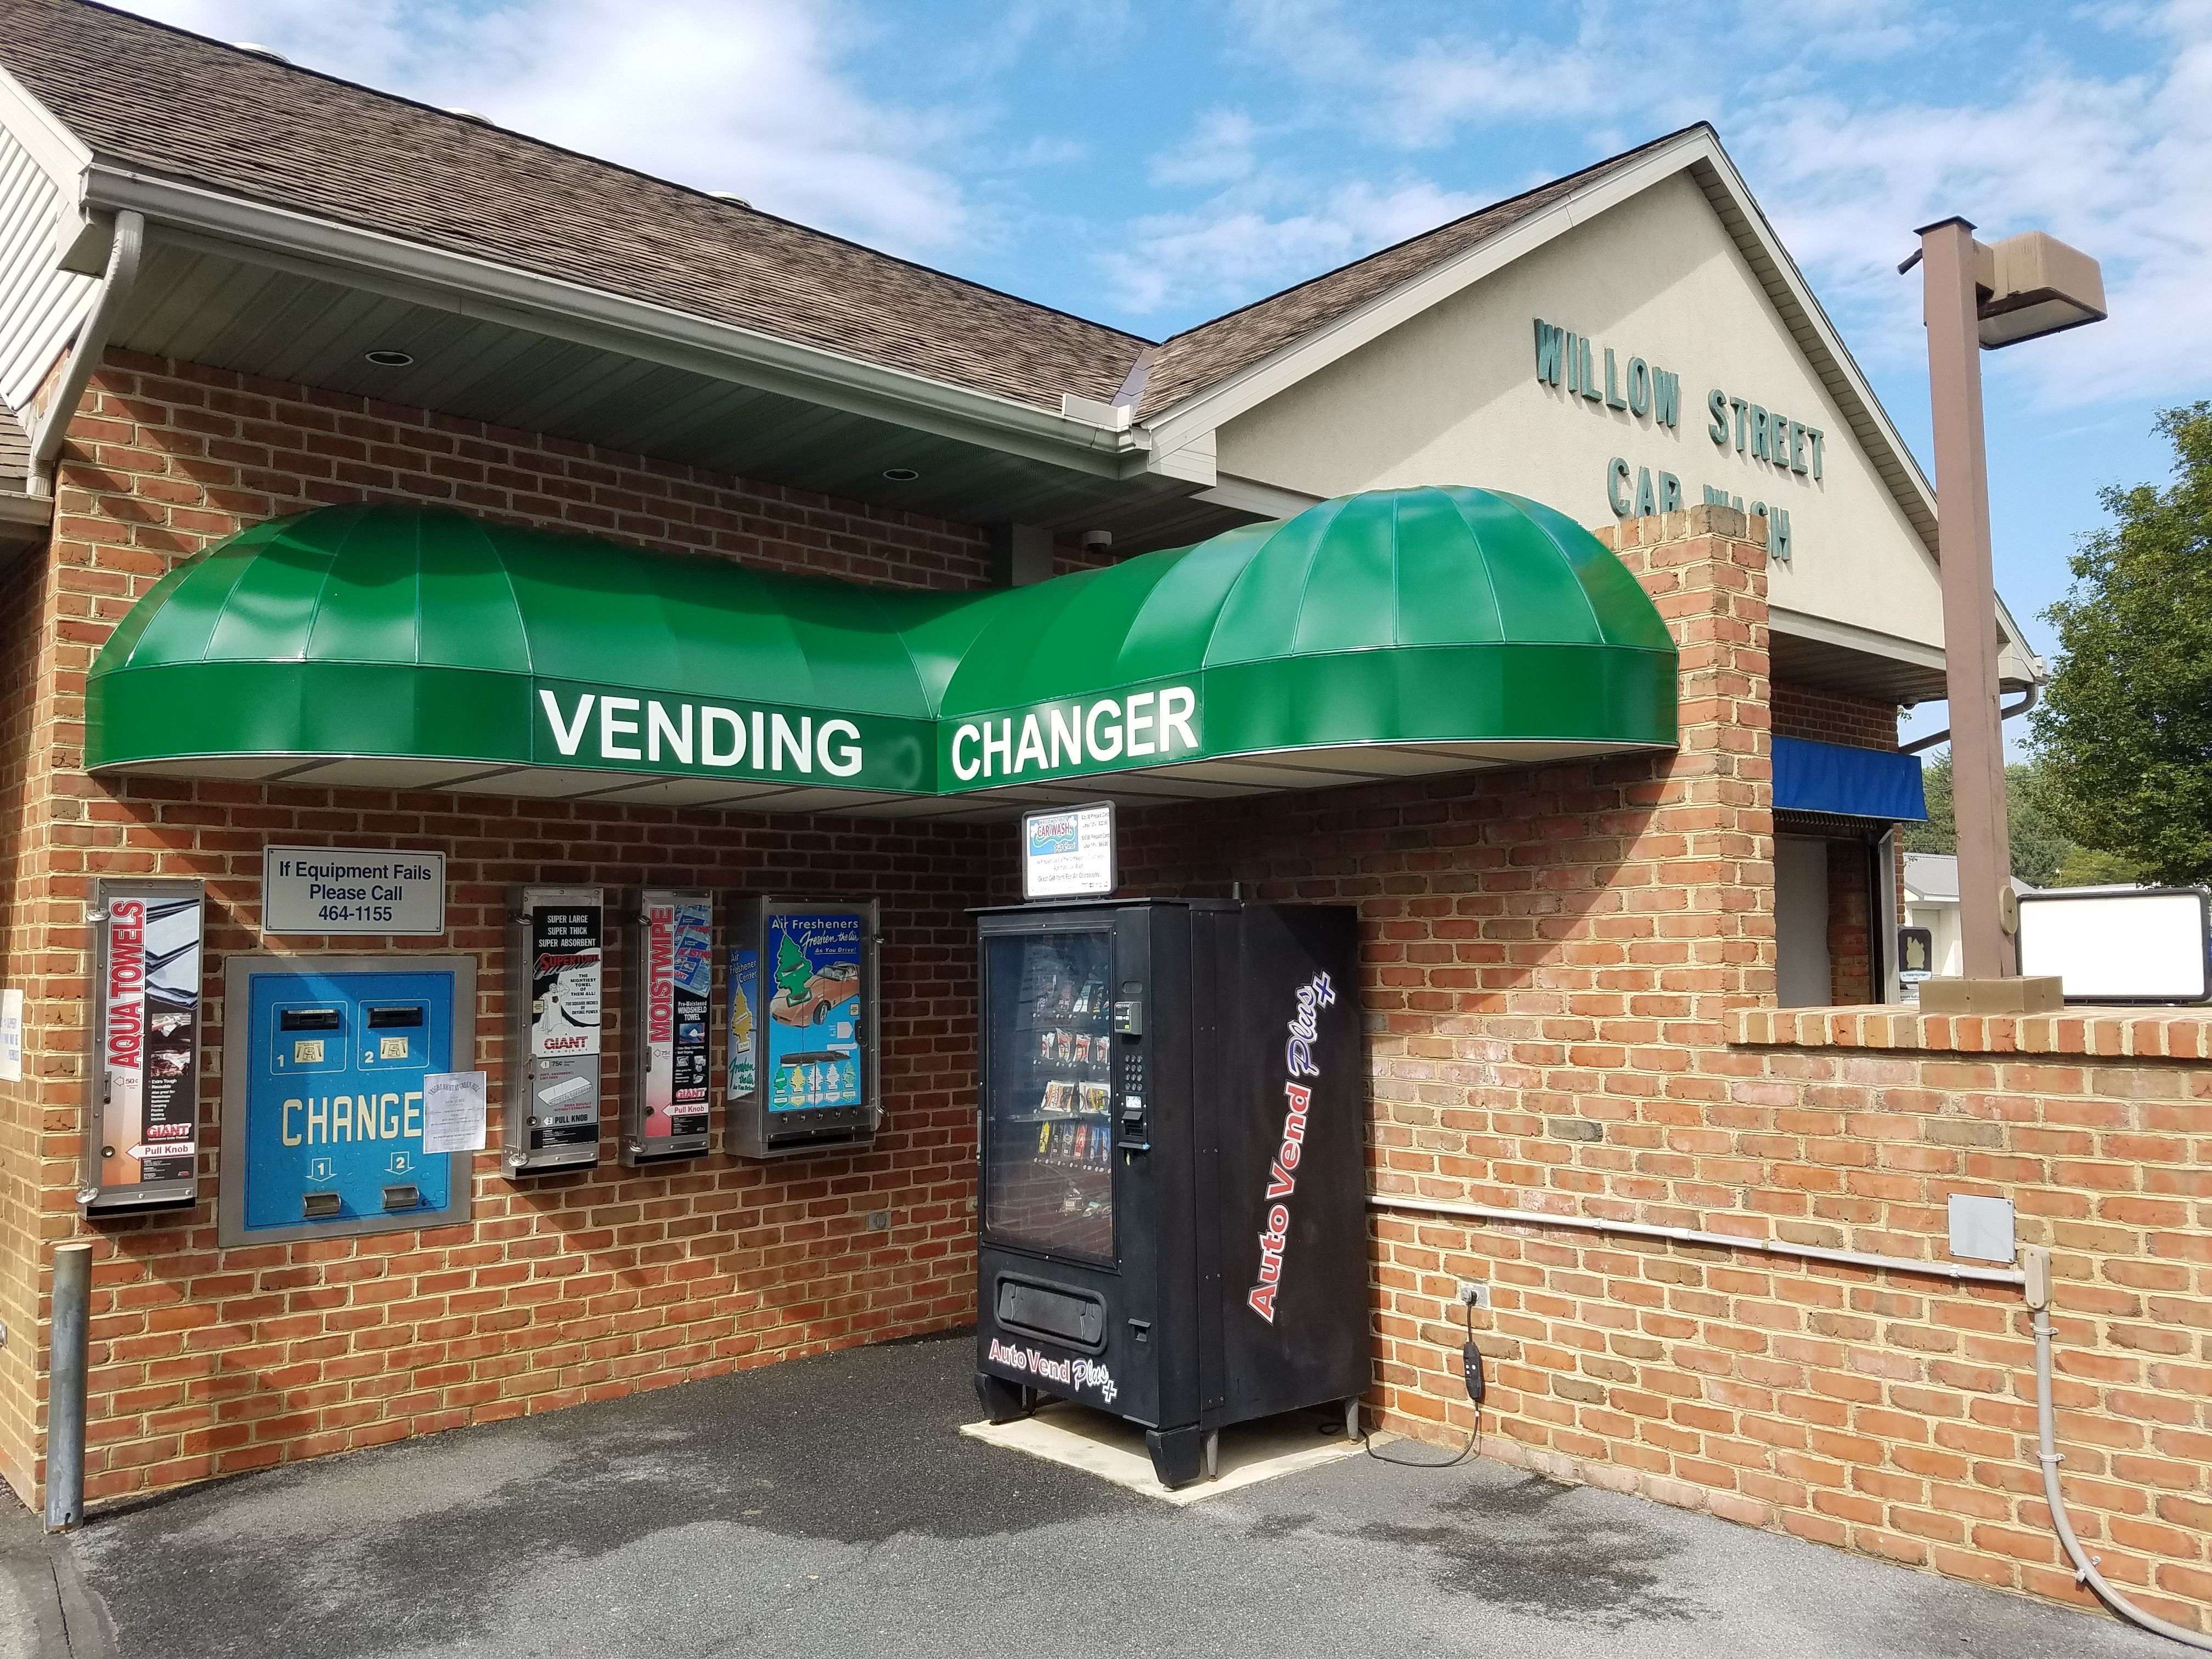 backlit awnings make your business stand out at night the